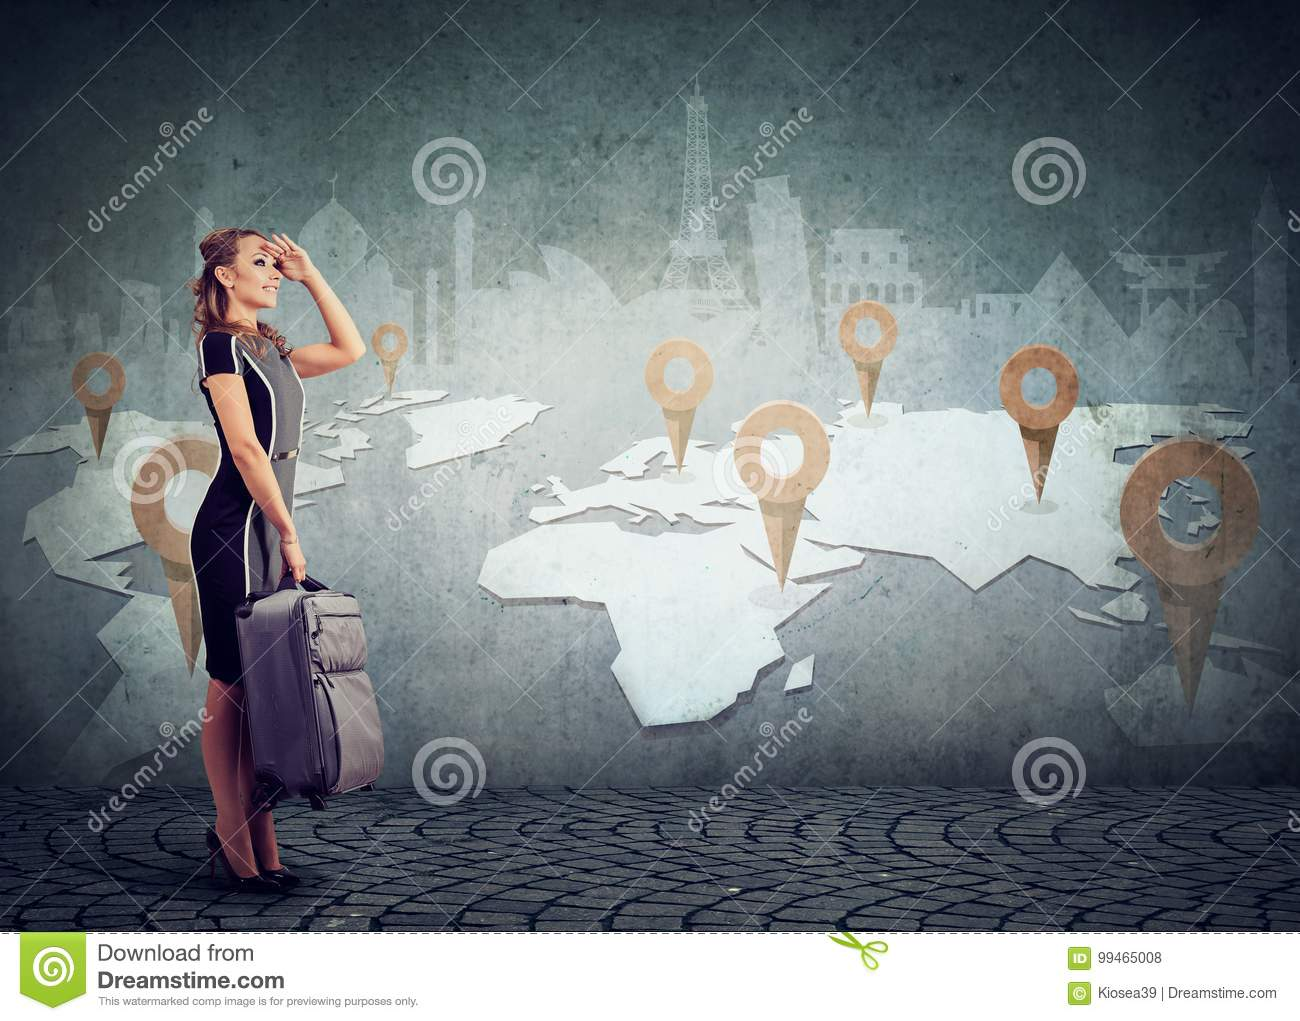 Woman with suitcase ready to explore the world on landmarks map background